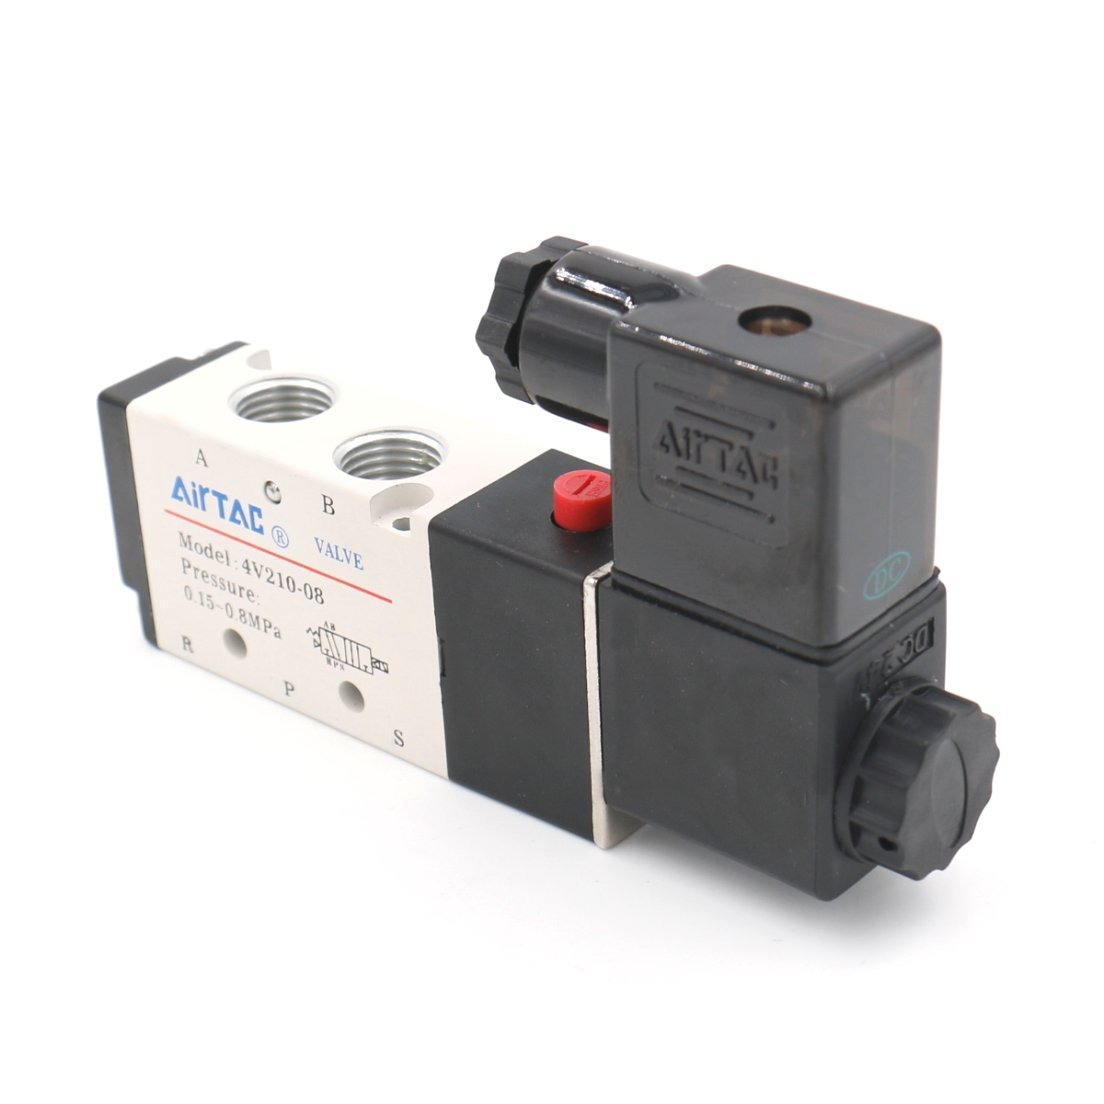 Baomain Electric Solenoid Valve 4V210-08 AC110V 2 Position 5 Way Inlet 1/4'' by Baomain